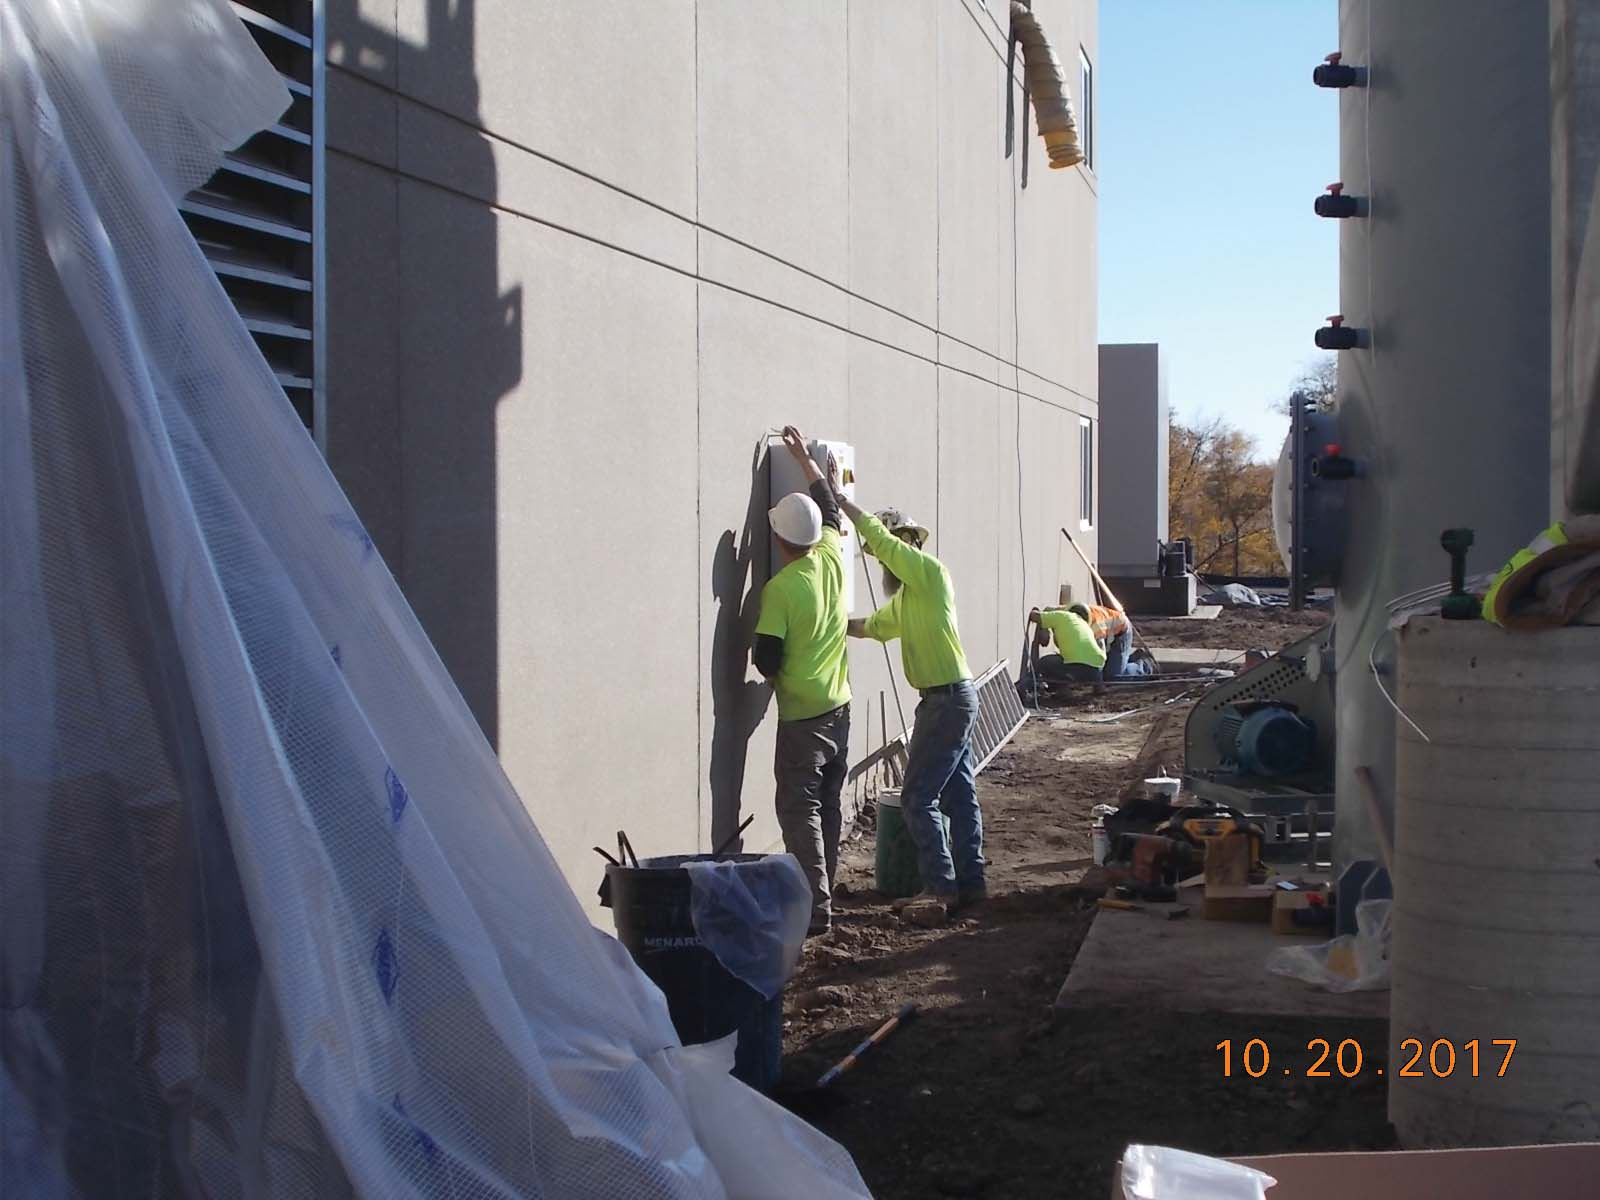 JTJ installing the control panel for the scrubber on the west wall of building.